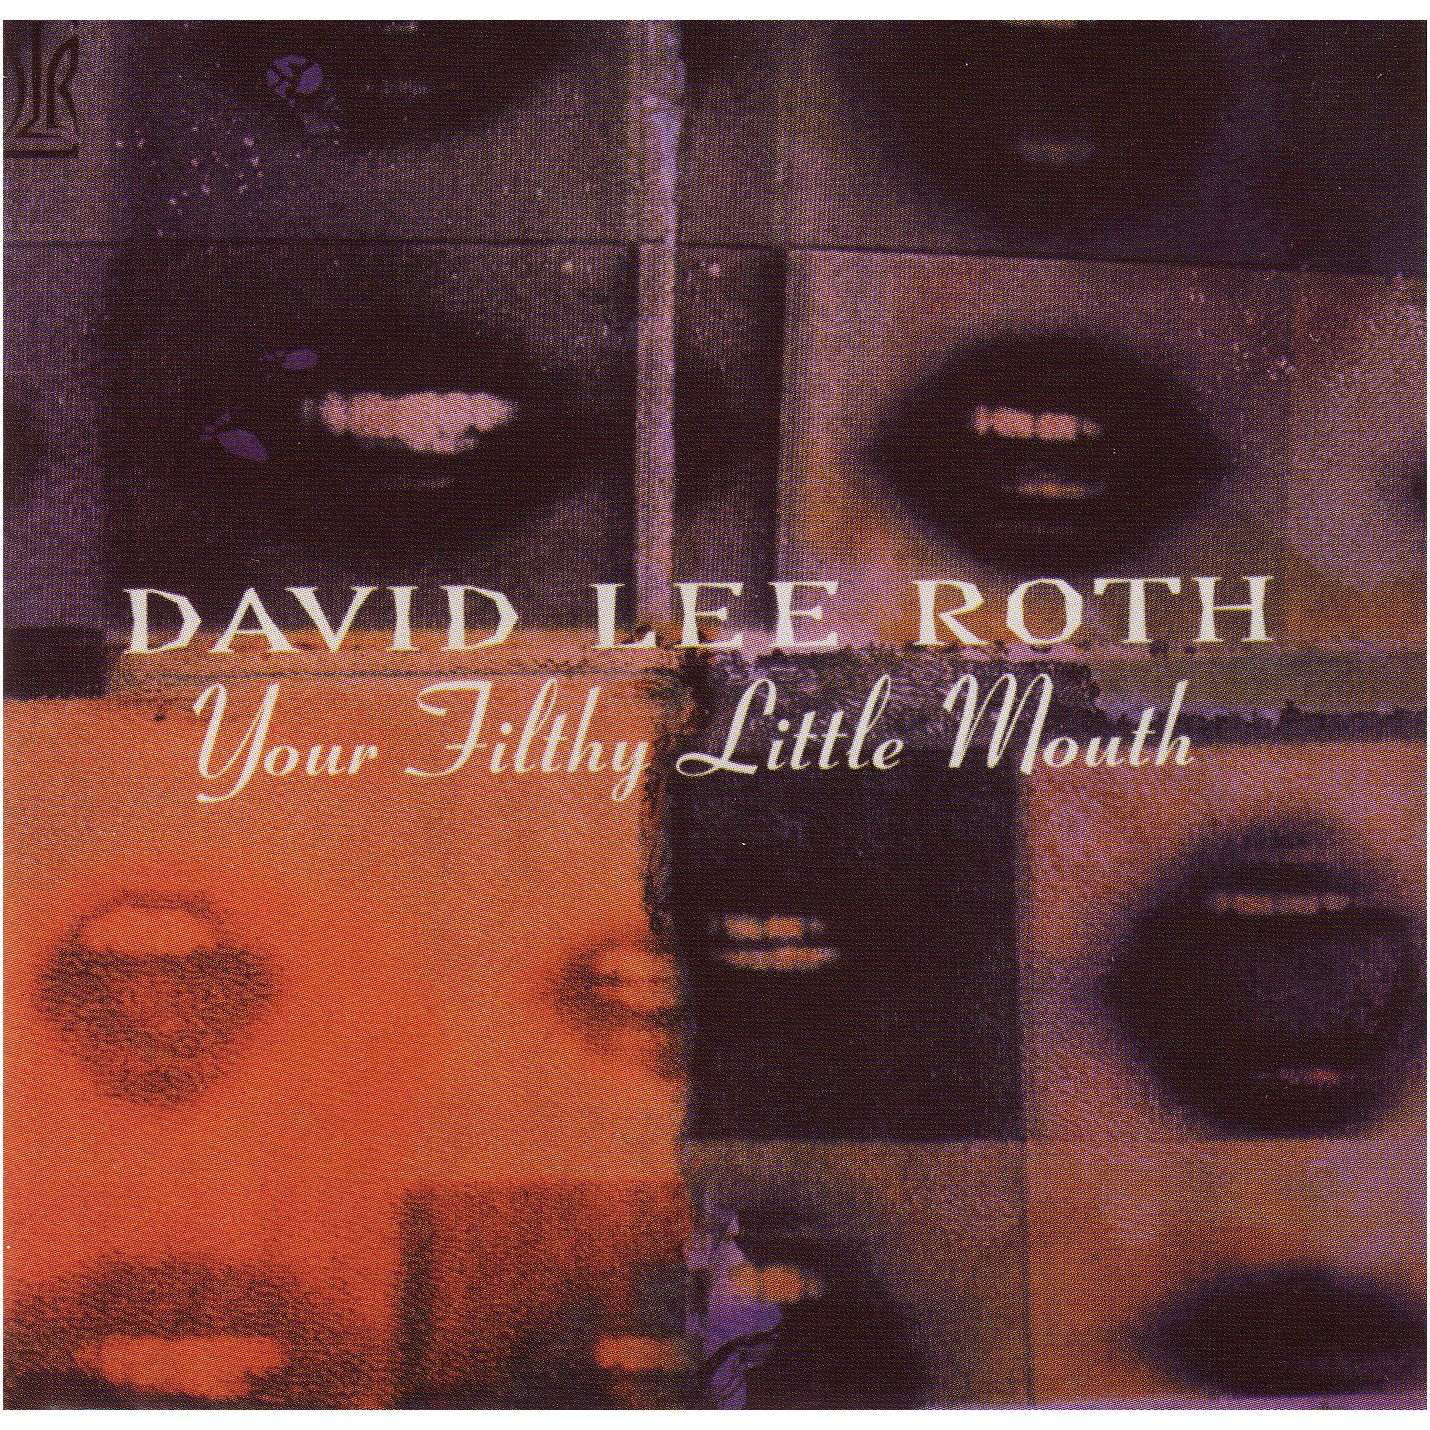 David Lee Roth - Your Filthy Little Mouth (Original Recording Remastered/Limited Anniversary Edition)